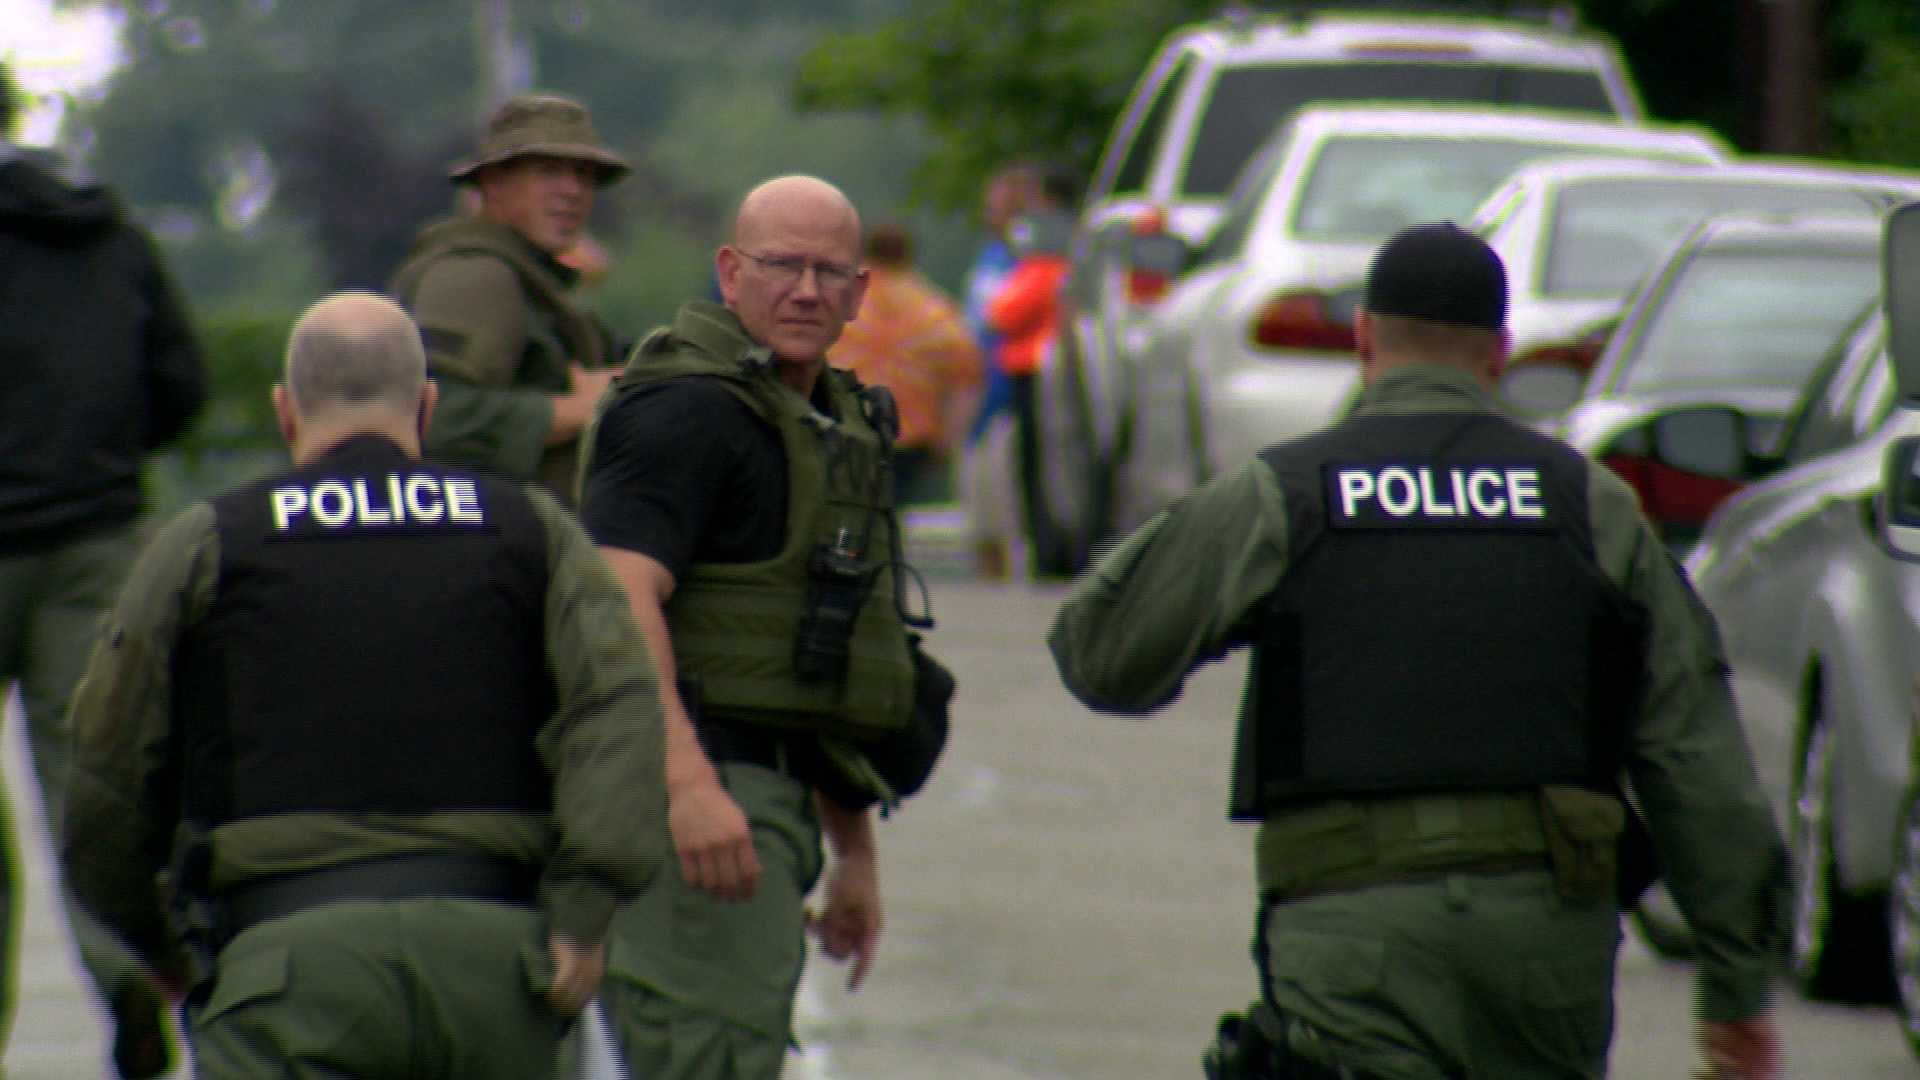 A woman was taken in to custody Saturday afternoon after a SWAT situation in South Park.